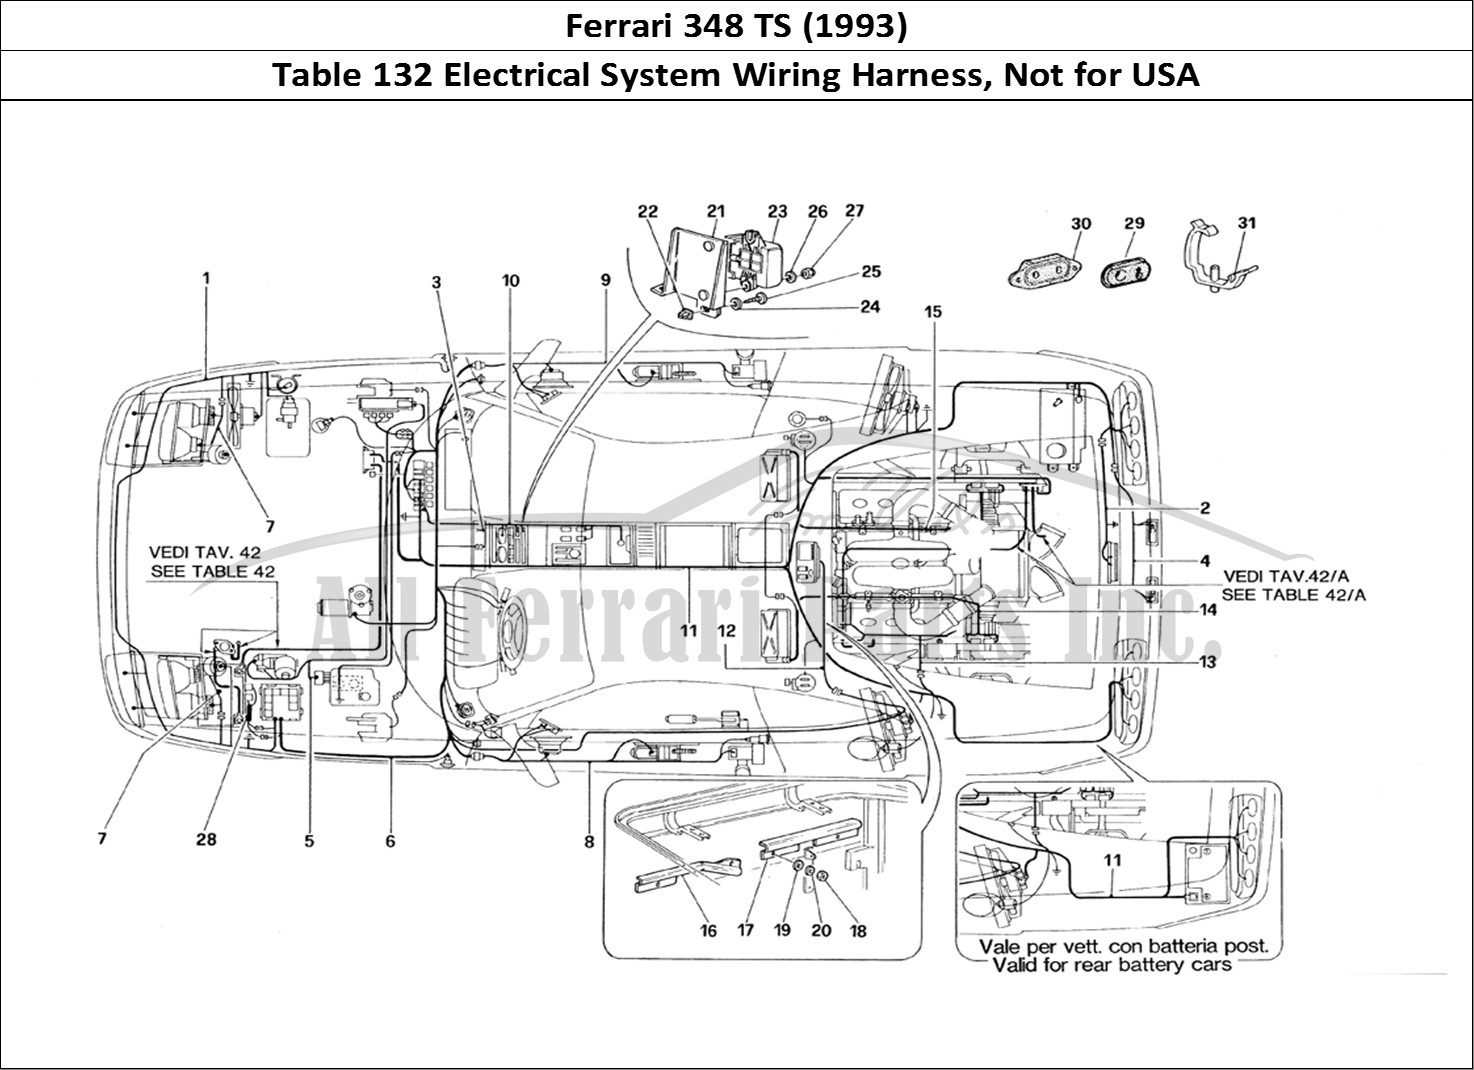 Buy Original Ferrari 348 Ts 132 Electrical System